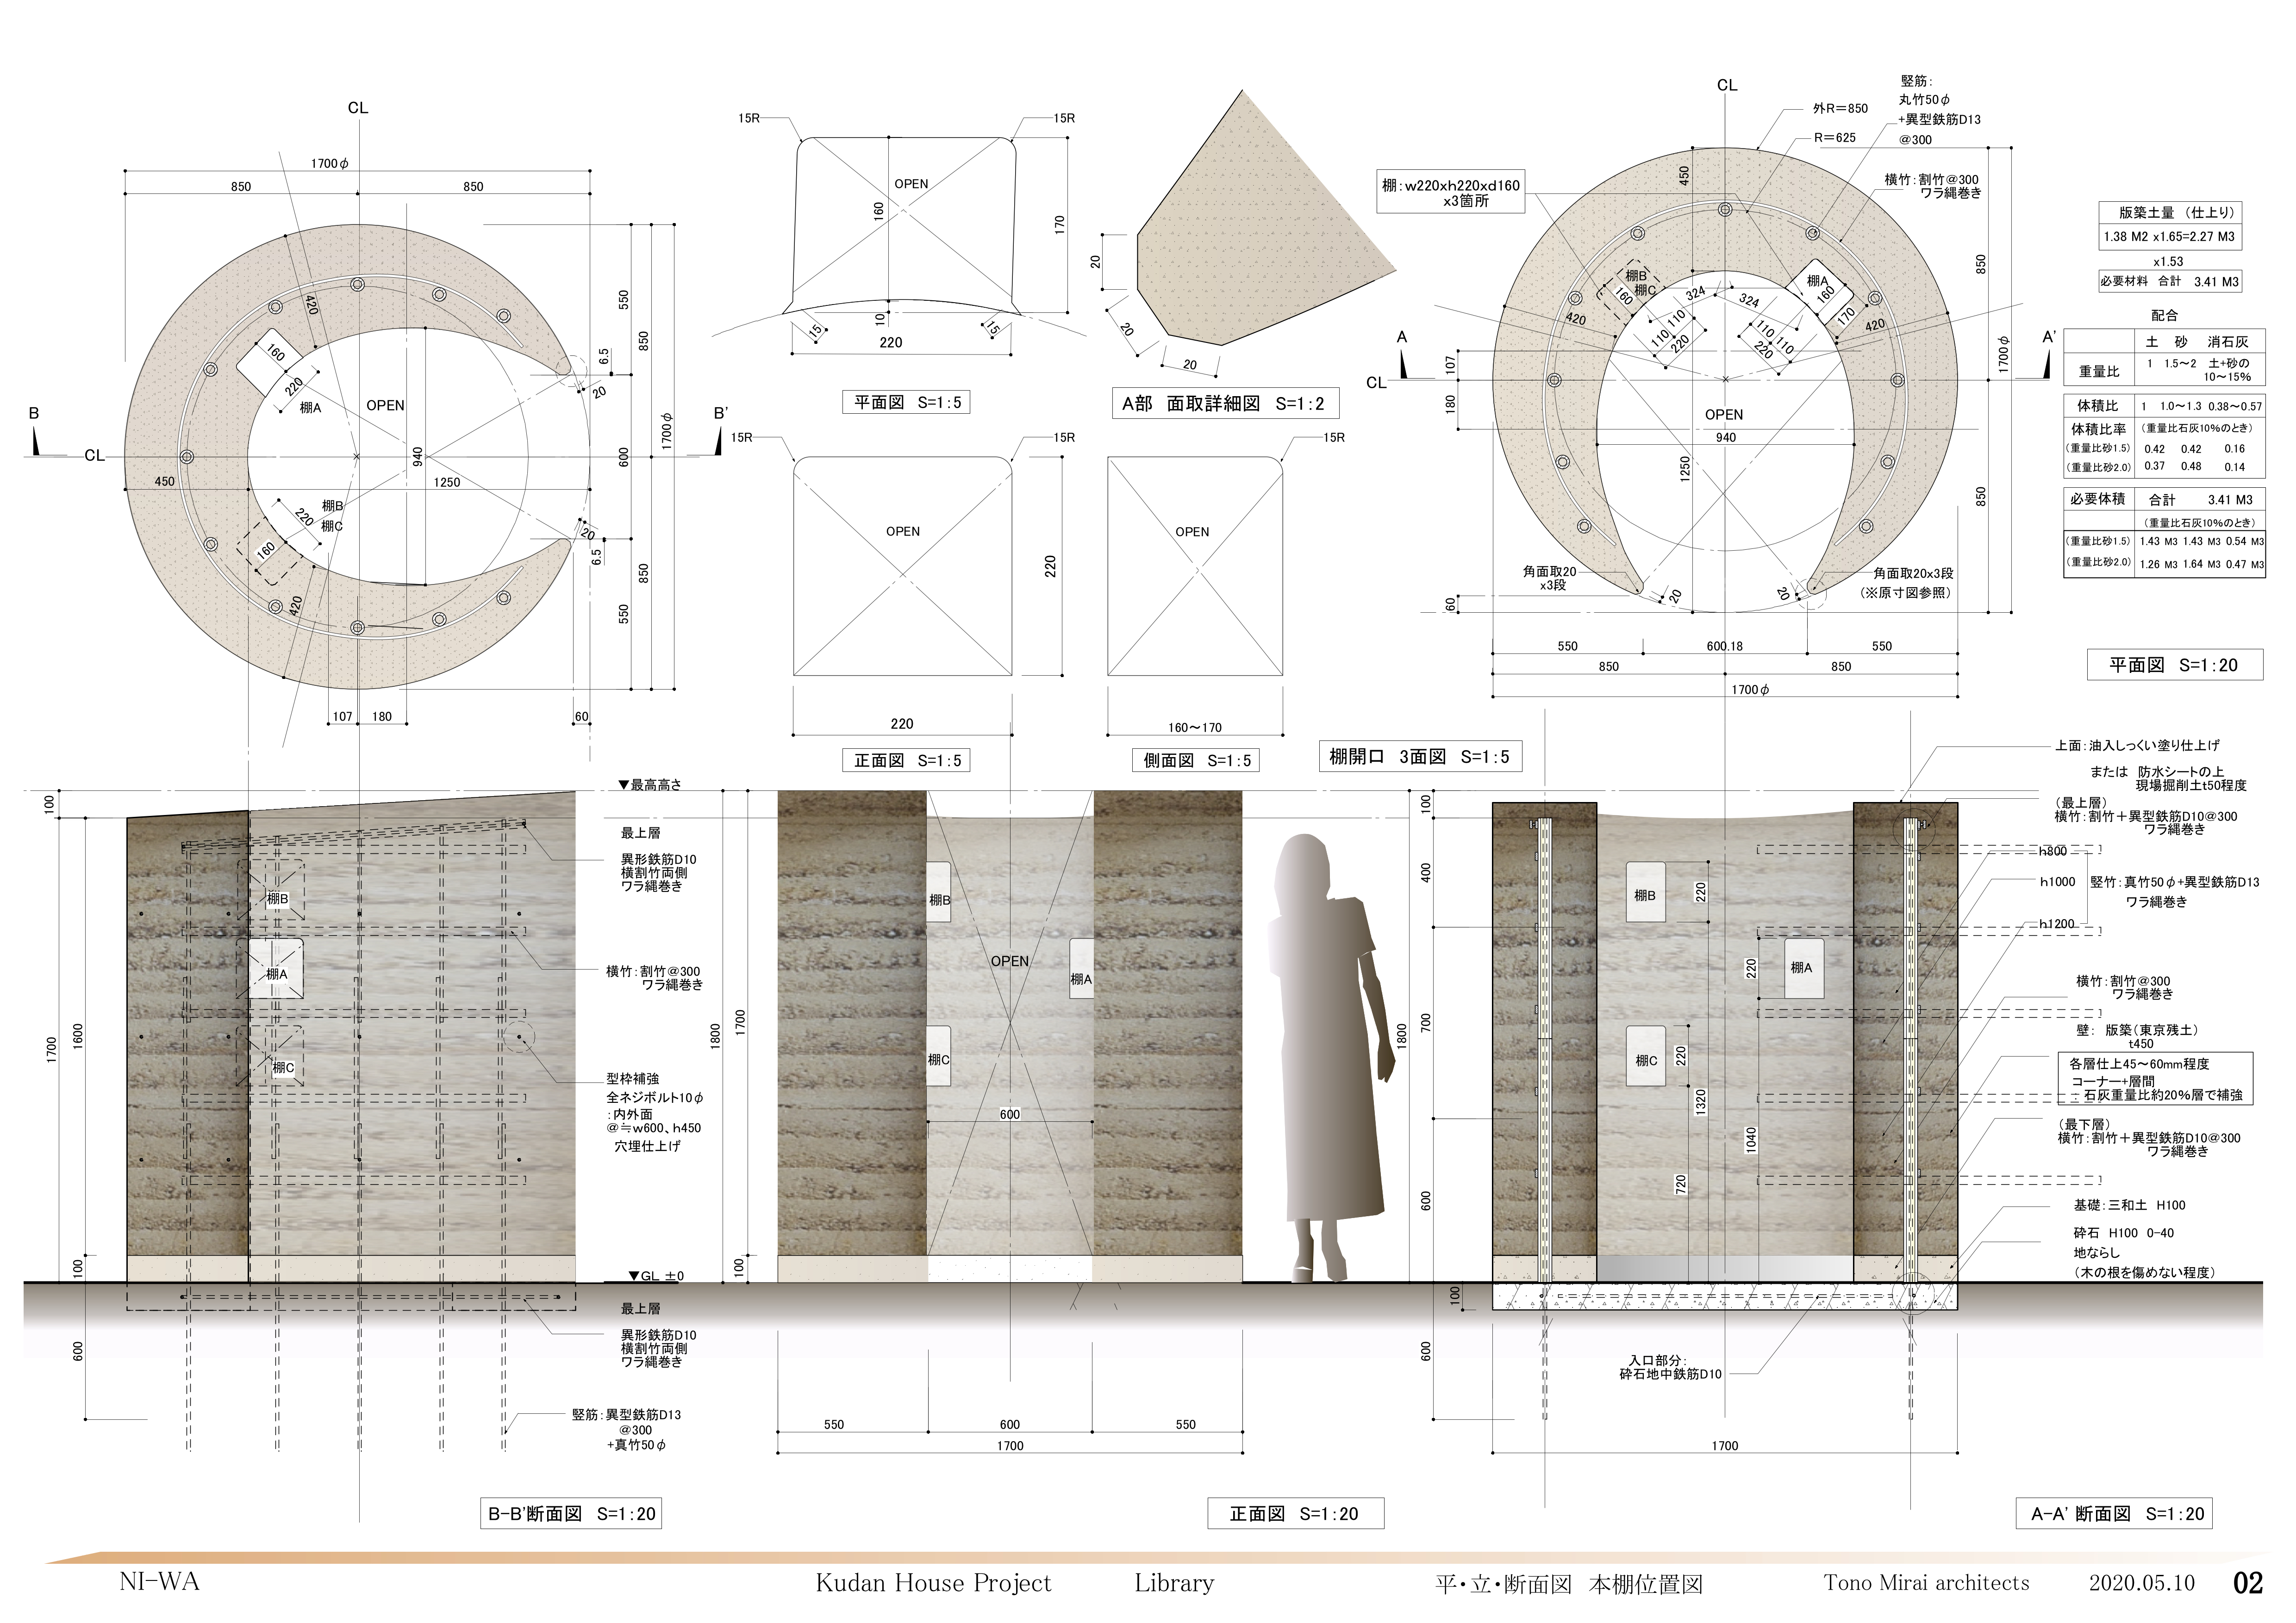 Earth Library Plan